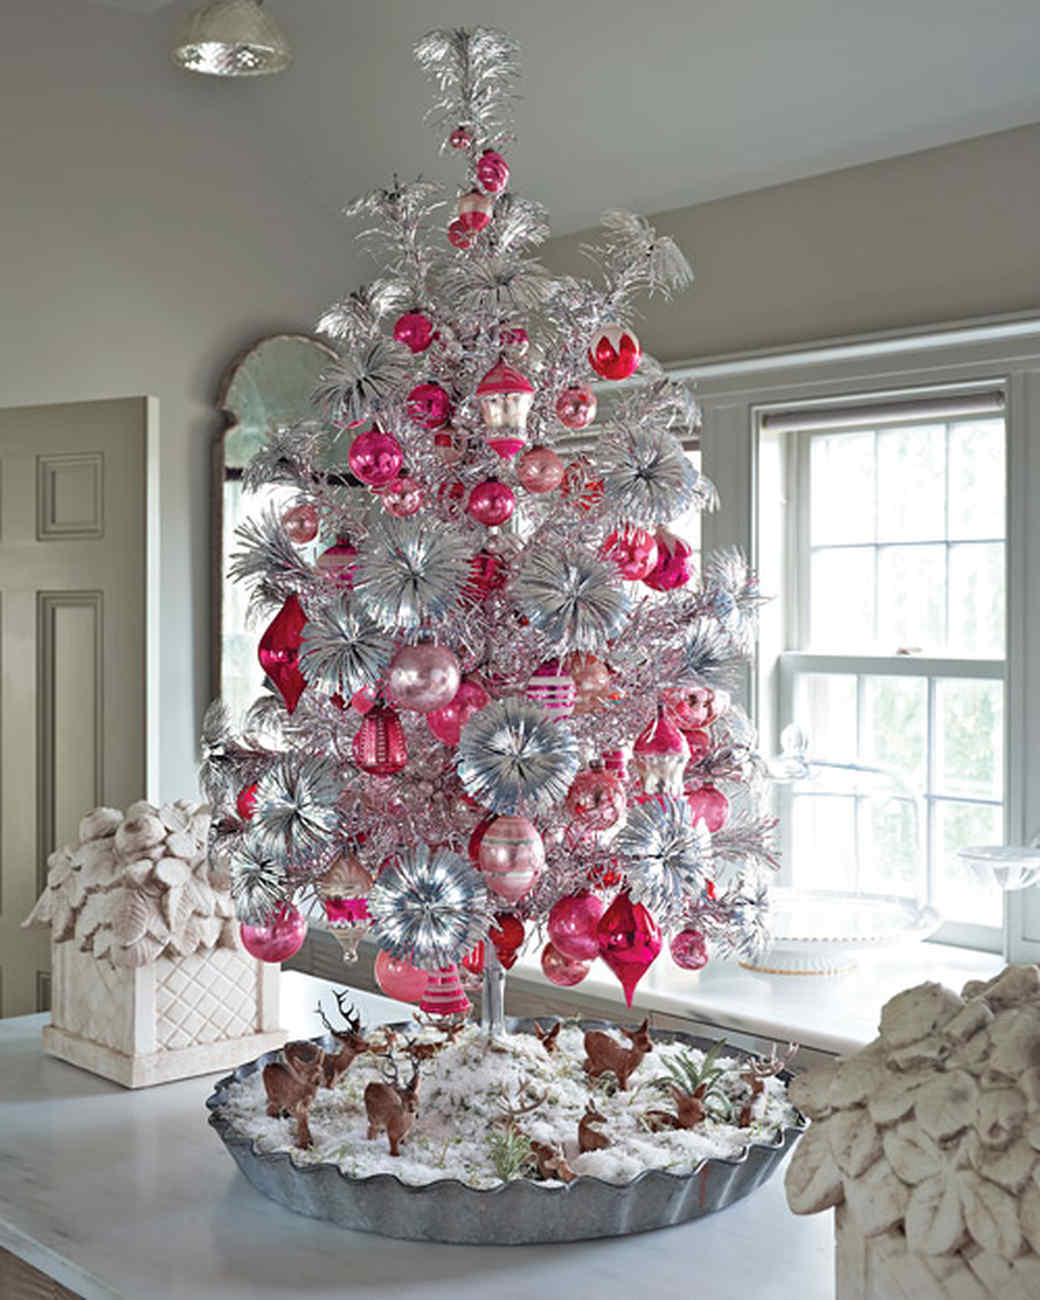 28 creative christmas tree decorating ideas martha stewart - Different Christmas Decorating Styles